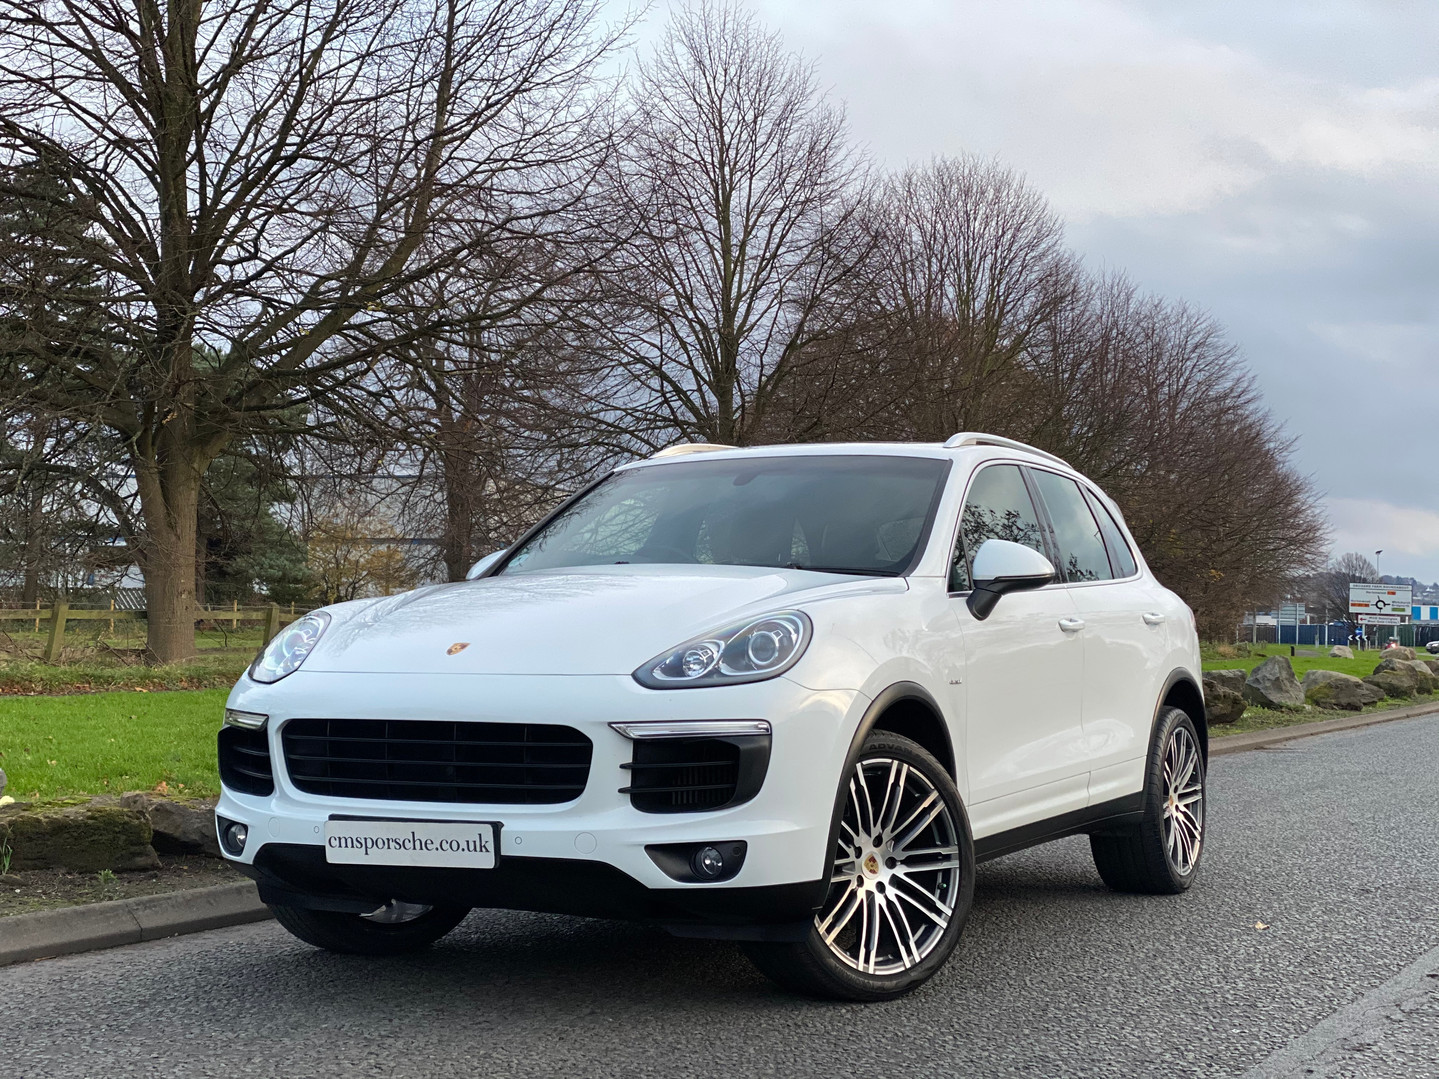 17' Porsche Cayenne For Sale